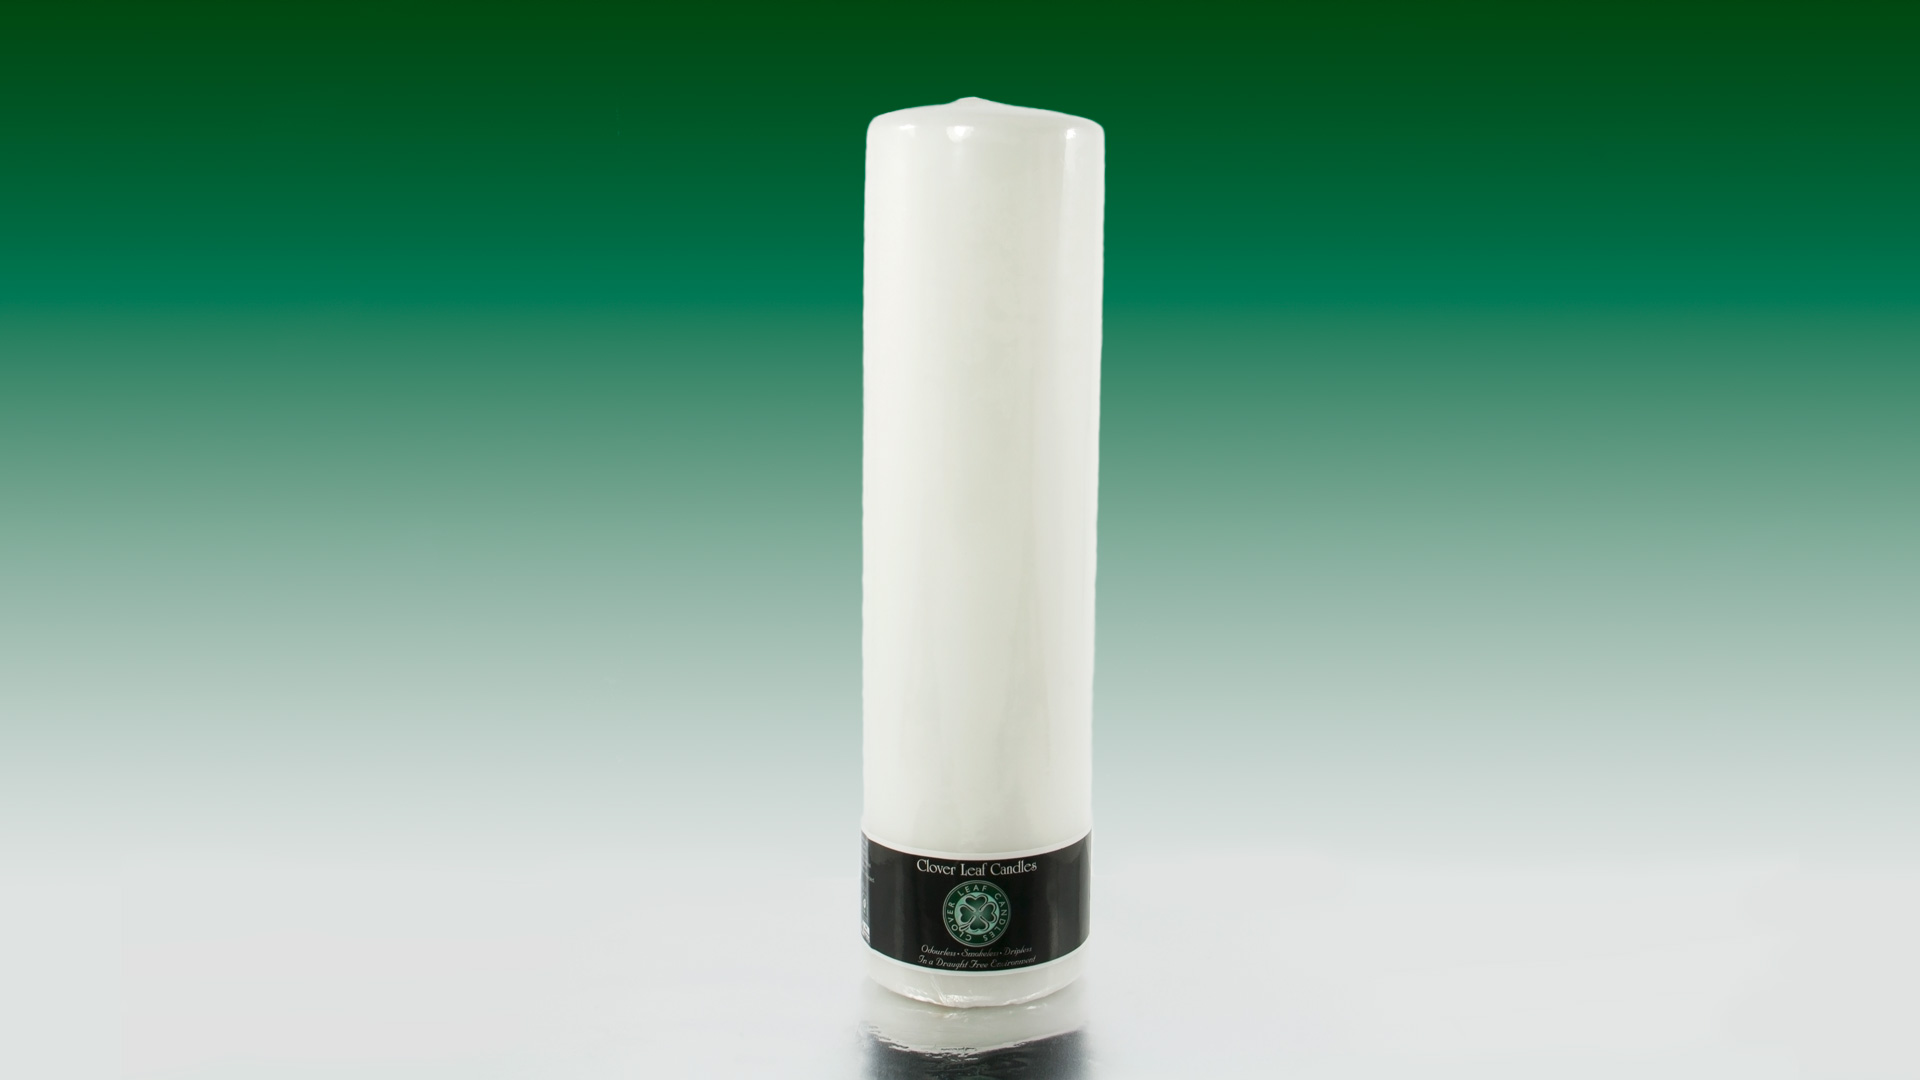 Our classic shape pillar candles will add warmth and ambience to both your indoor and outdoor spaces.